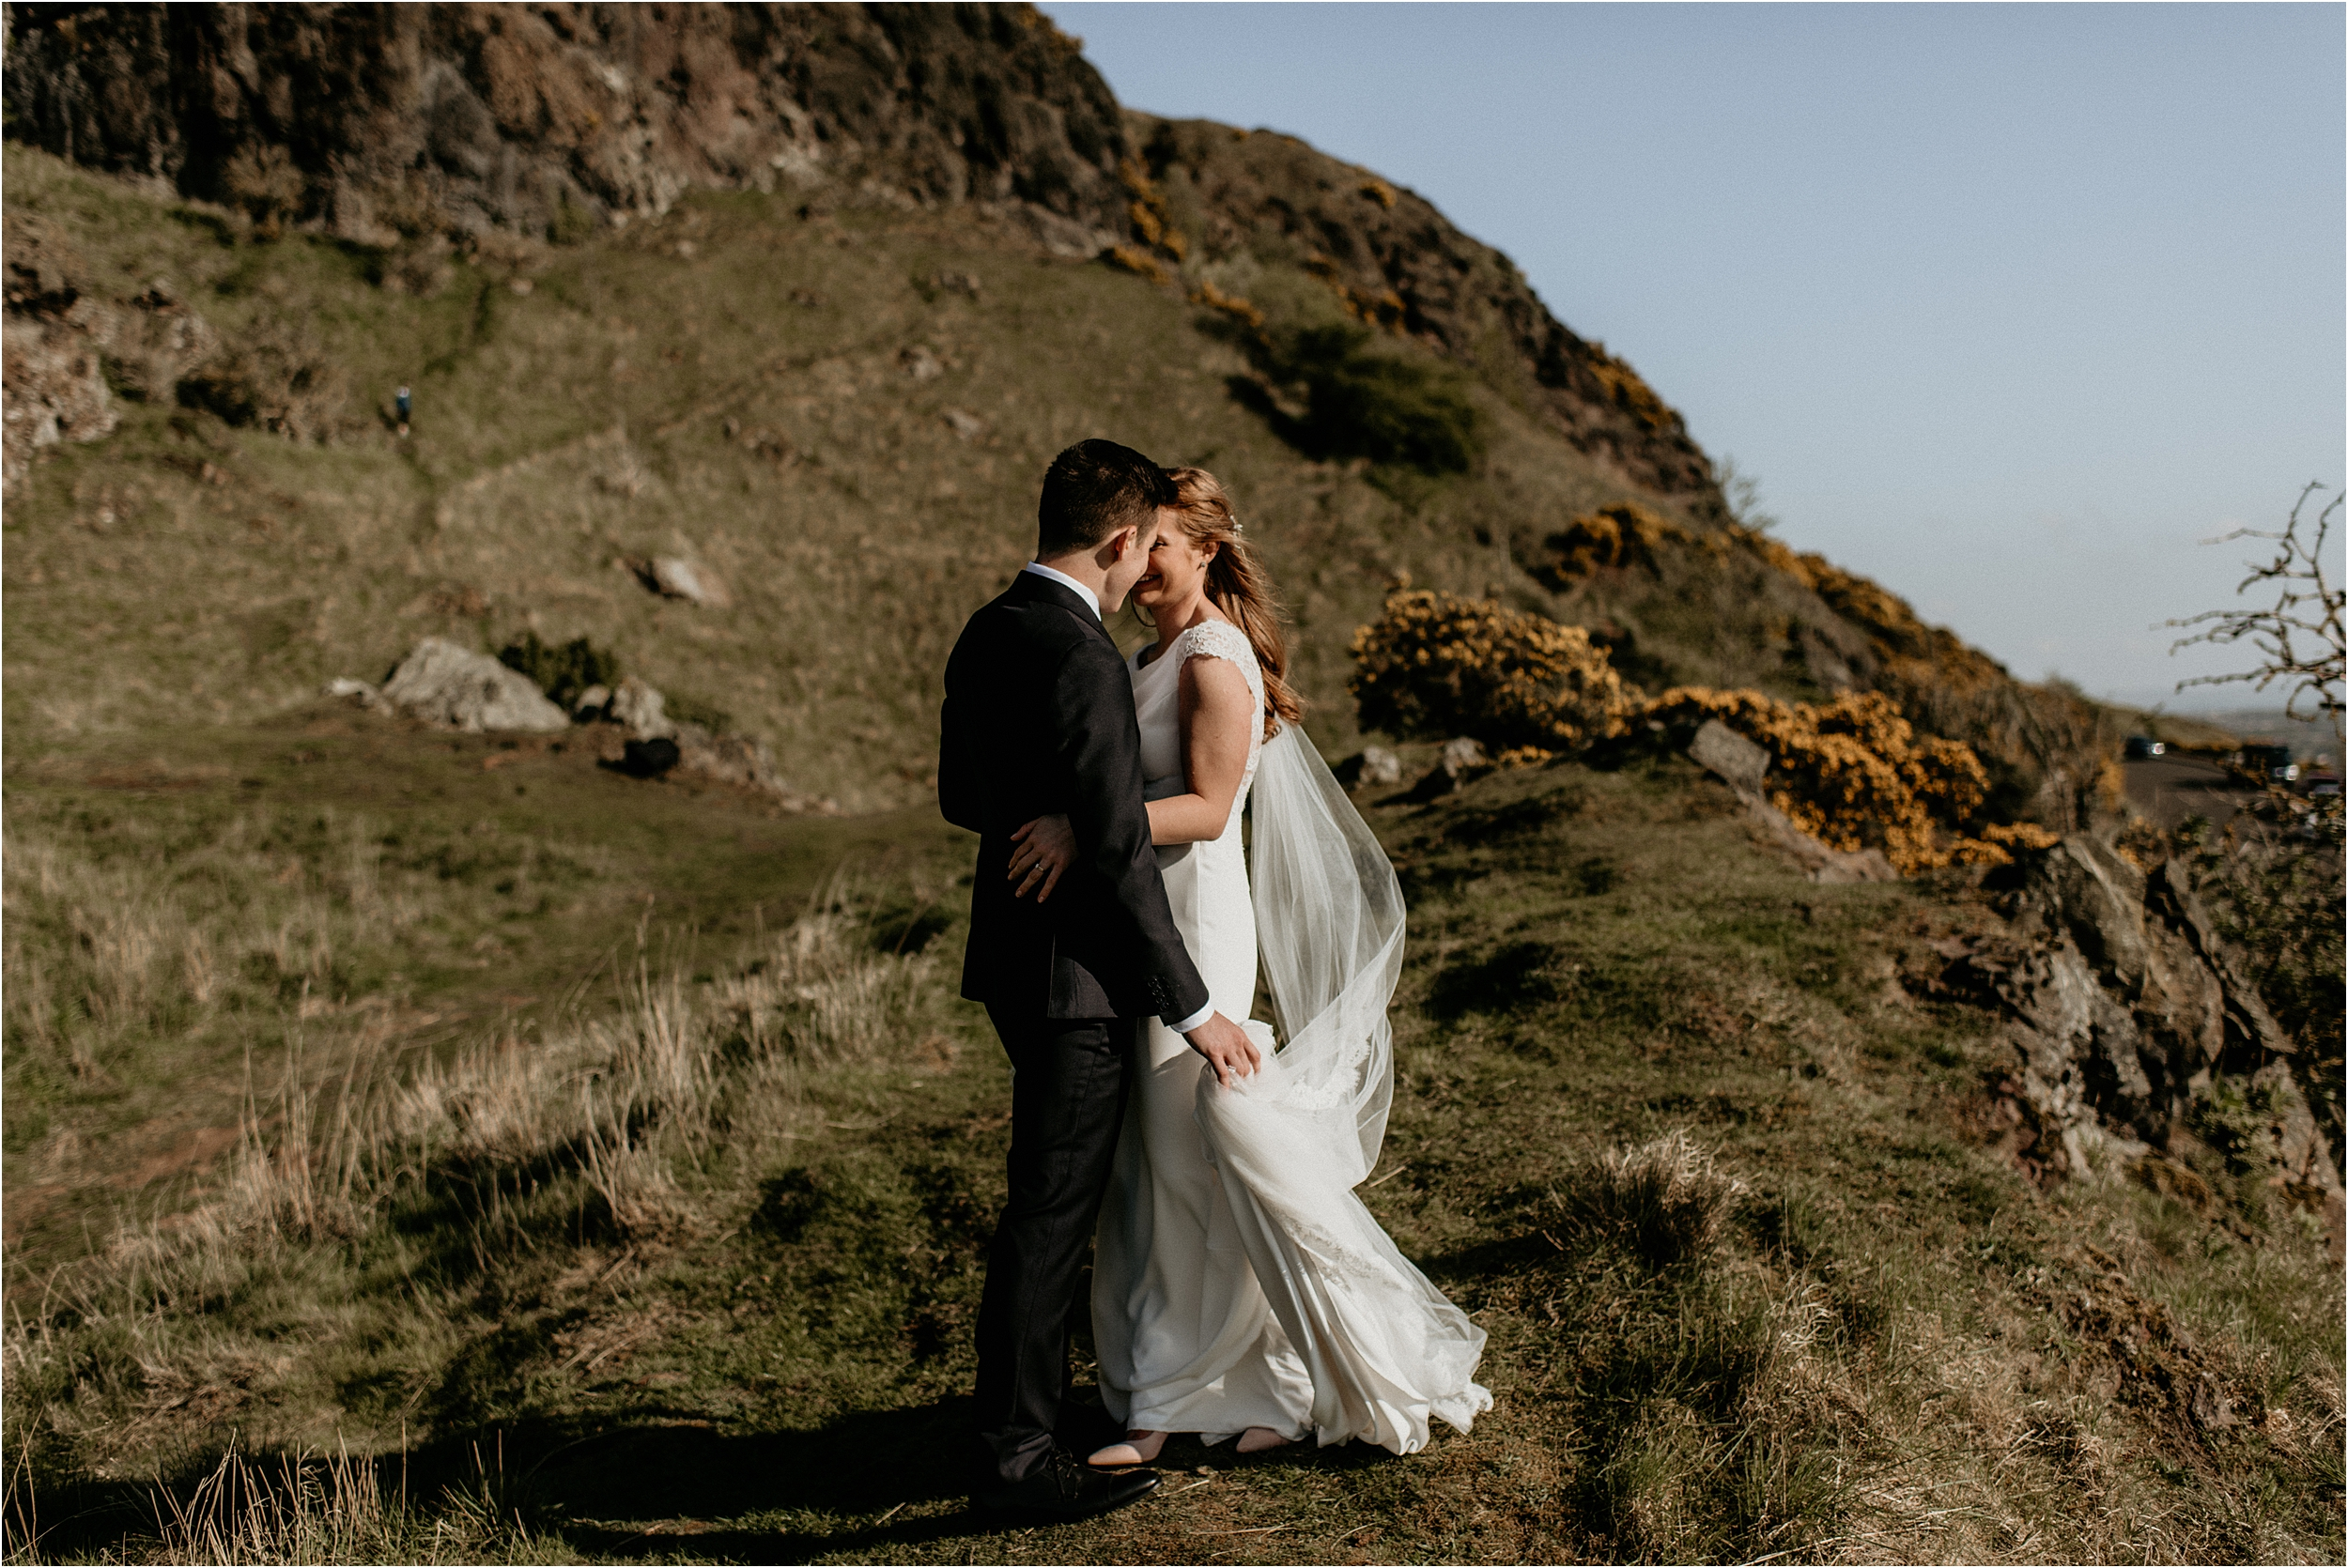 Timberyard-Edinburgh-wedding-photography__0075.jpg